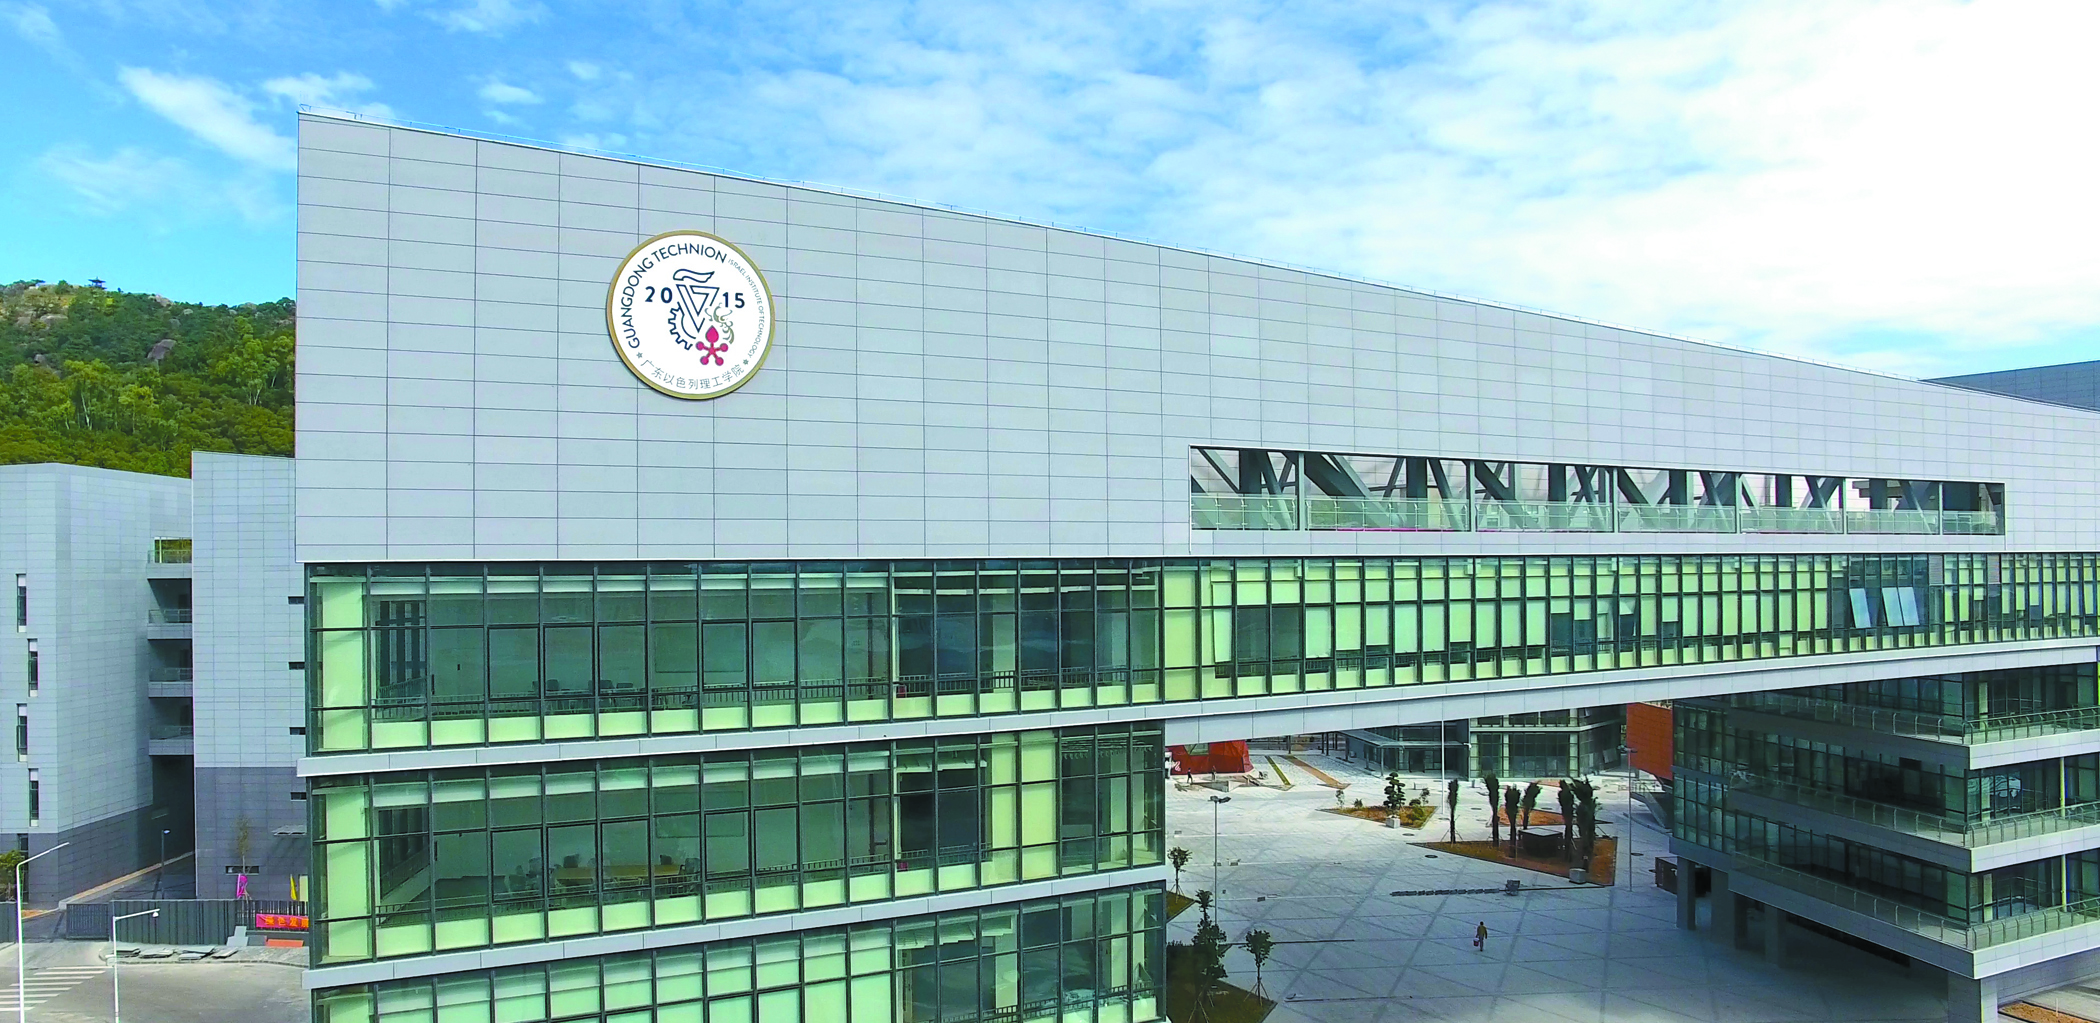 Guangdong Technion-Israel Institute of Technology in Shantou, China.